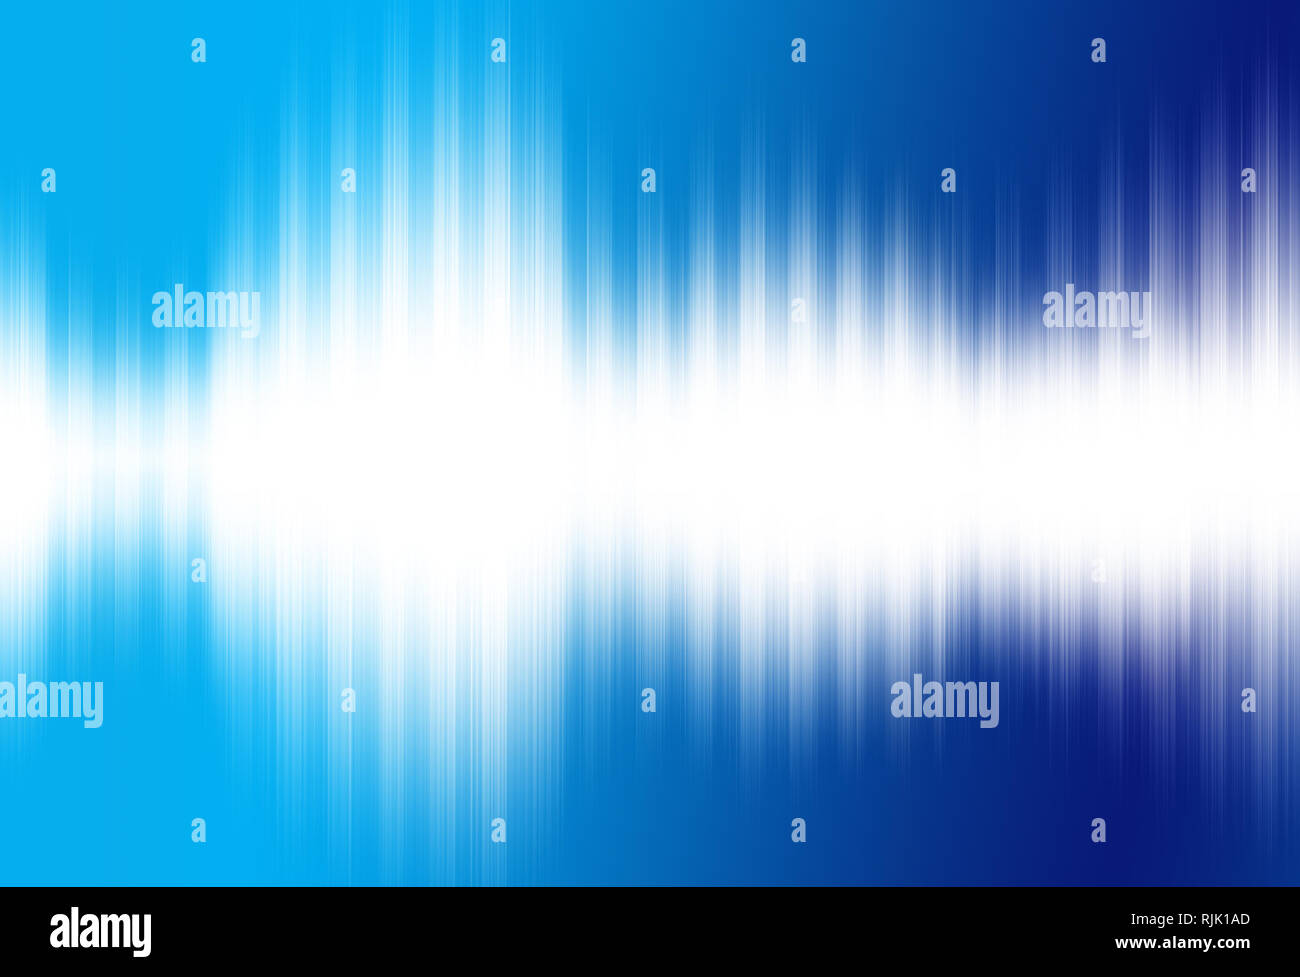 Sound Waves Illustration Stock Photos & Sound Waves